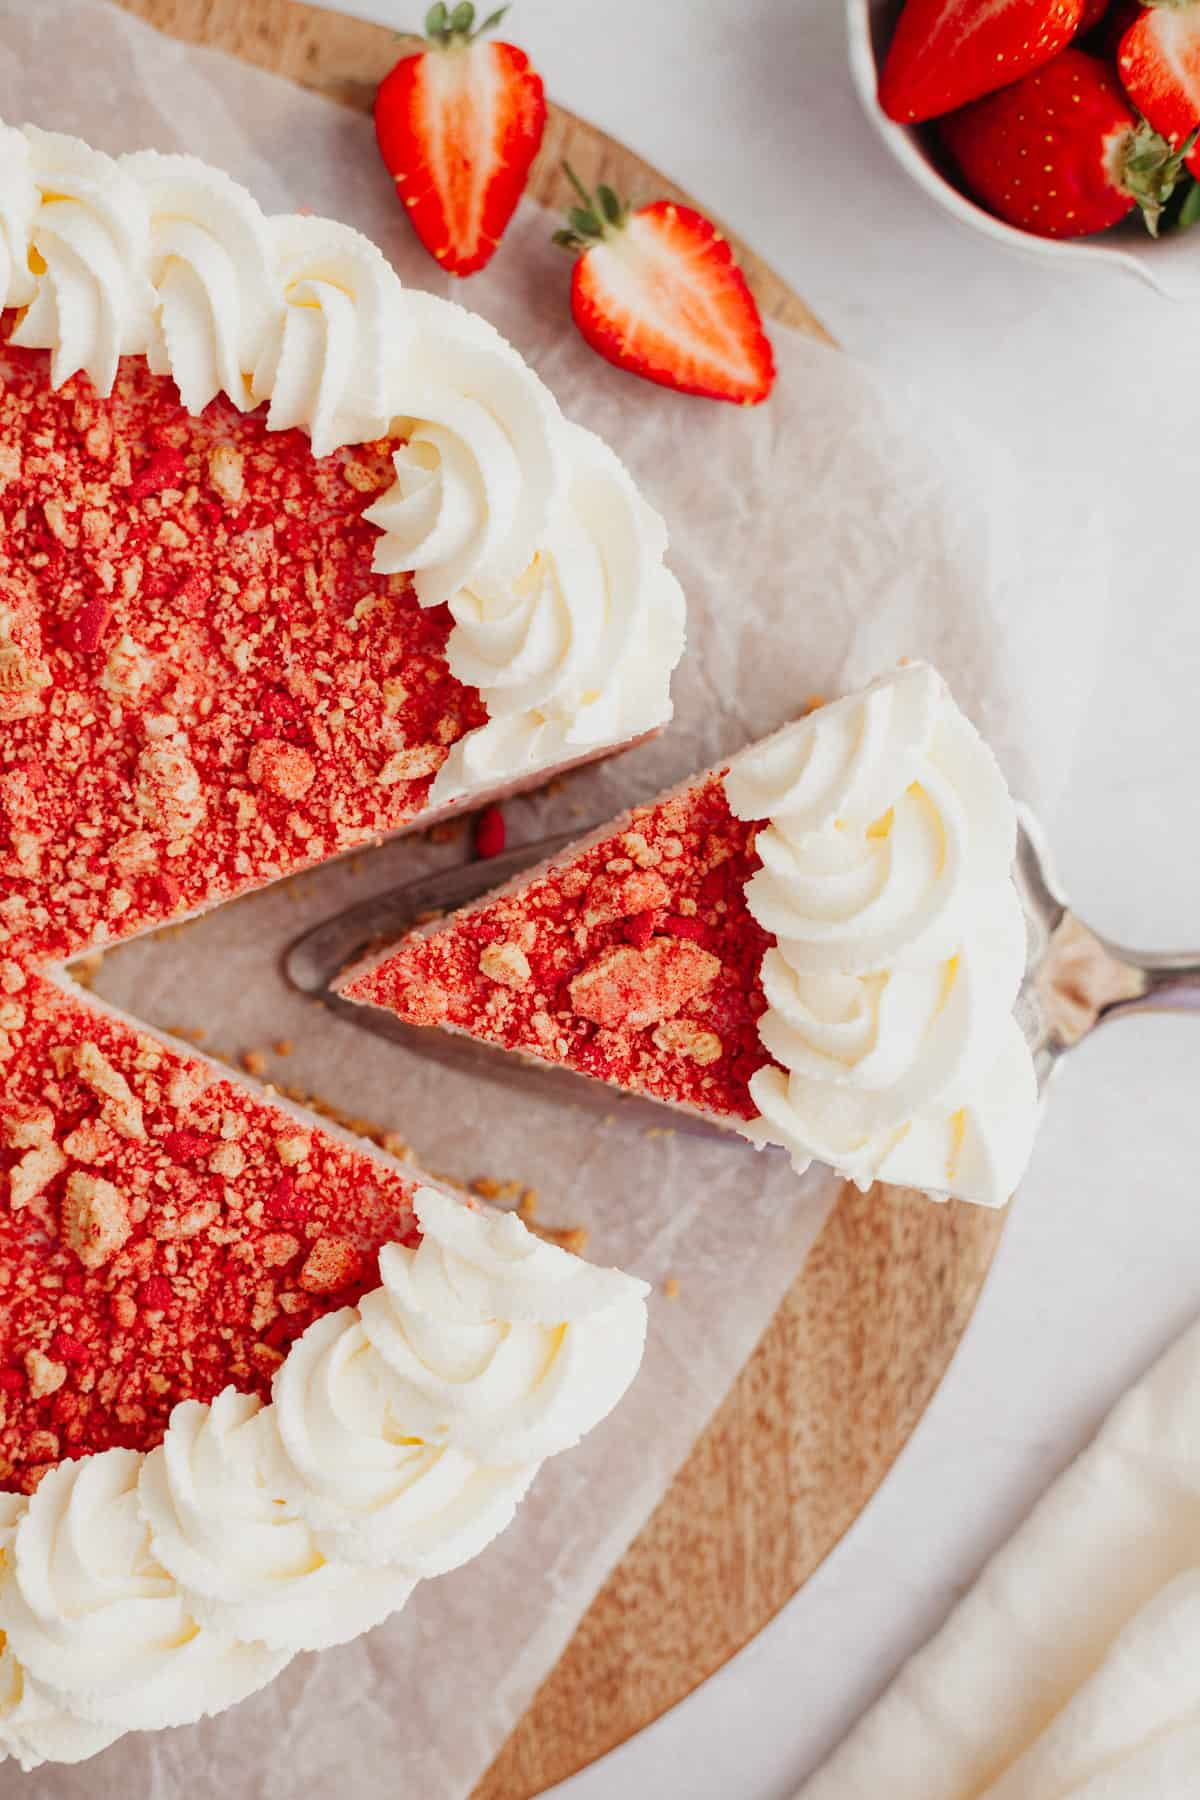 An overhead shot of a slice of strawberry cheesecake being lifted out with a silver cake server. The cheesecake has a ring of whipped cream on the outside, and then top of the cheesecake is covered in an oreo and strawberry topping.